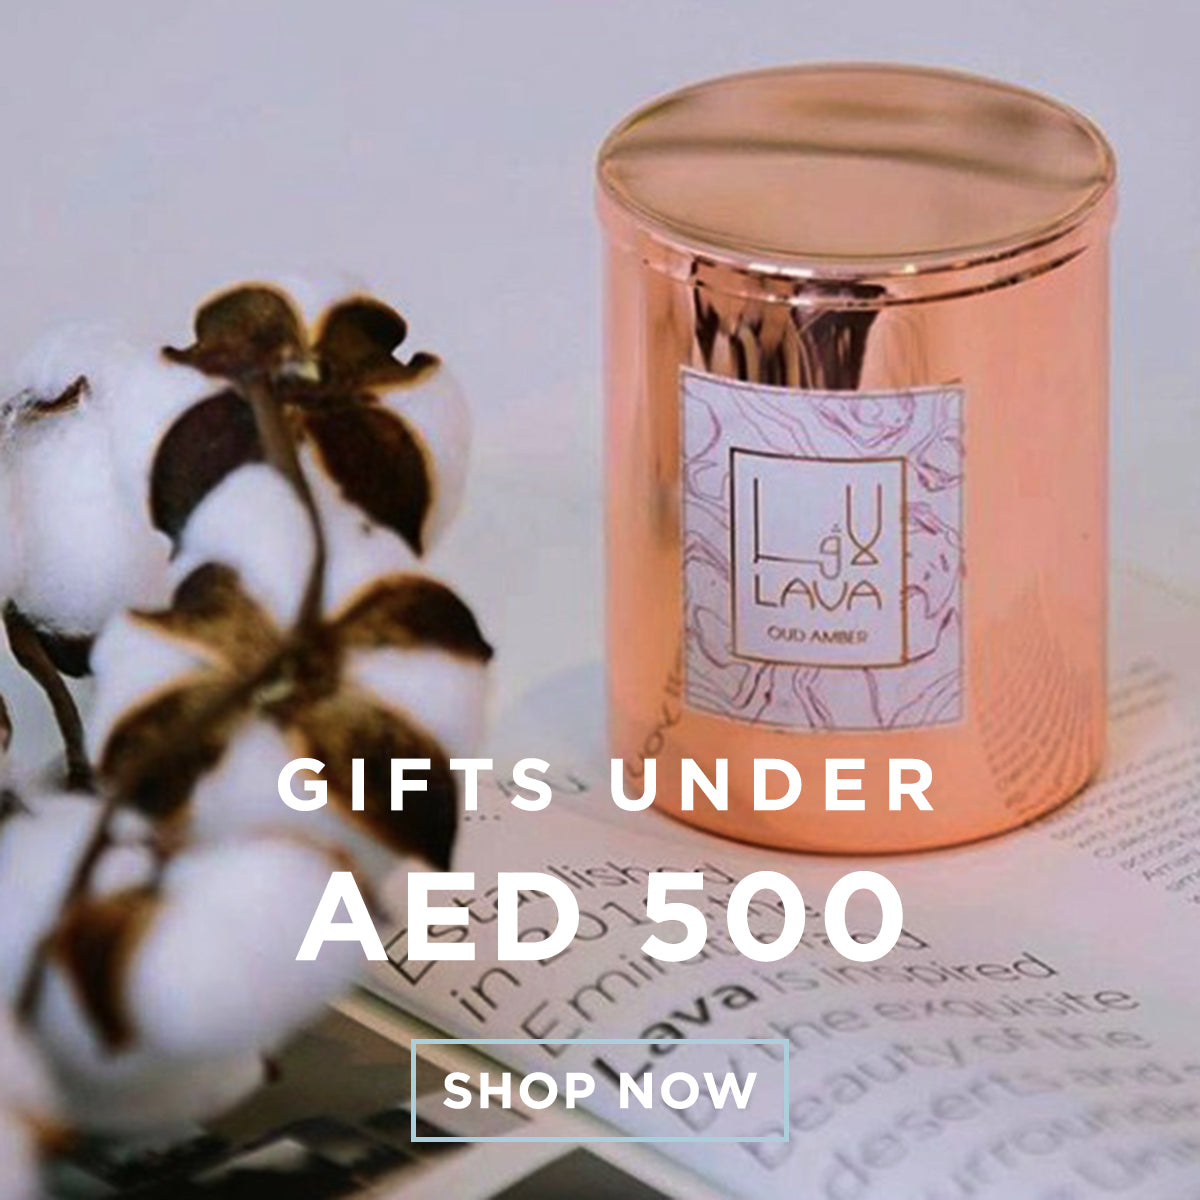 Gift Under AED 500 | Fashion Accessories | Fine Jewelry